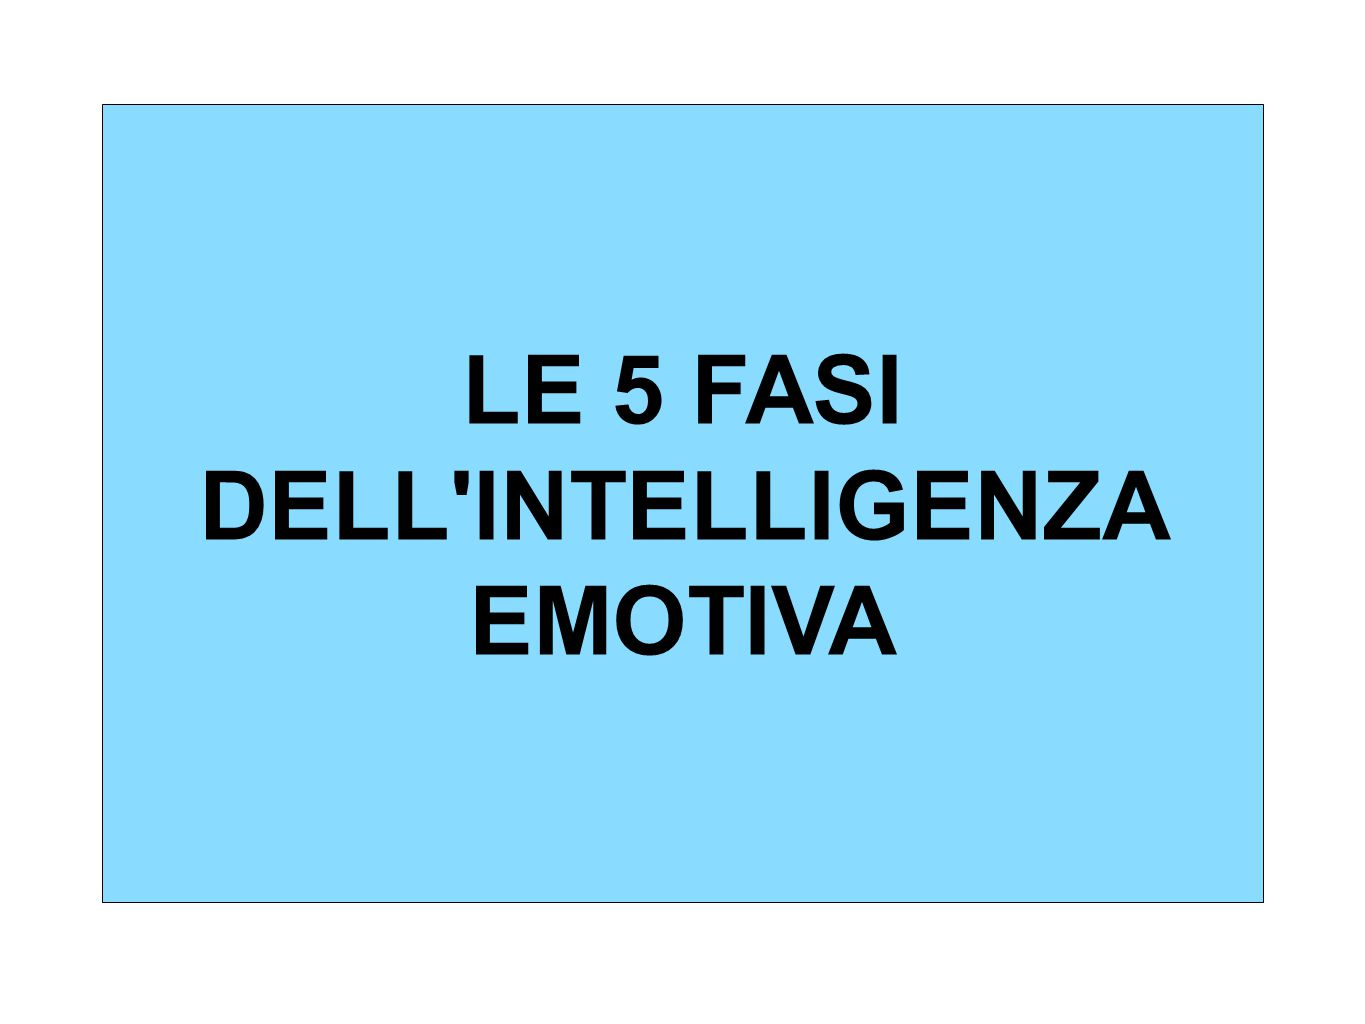 LE 5 FASI DELL'INTELLIGENZA EMOTIVA